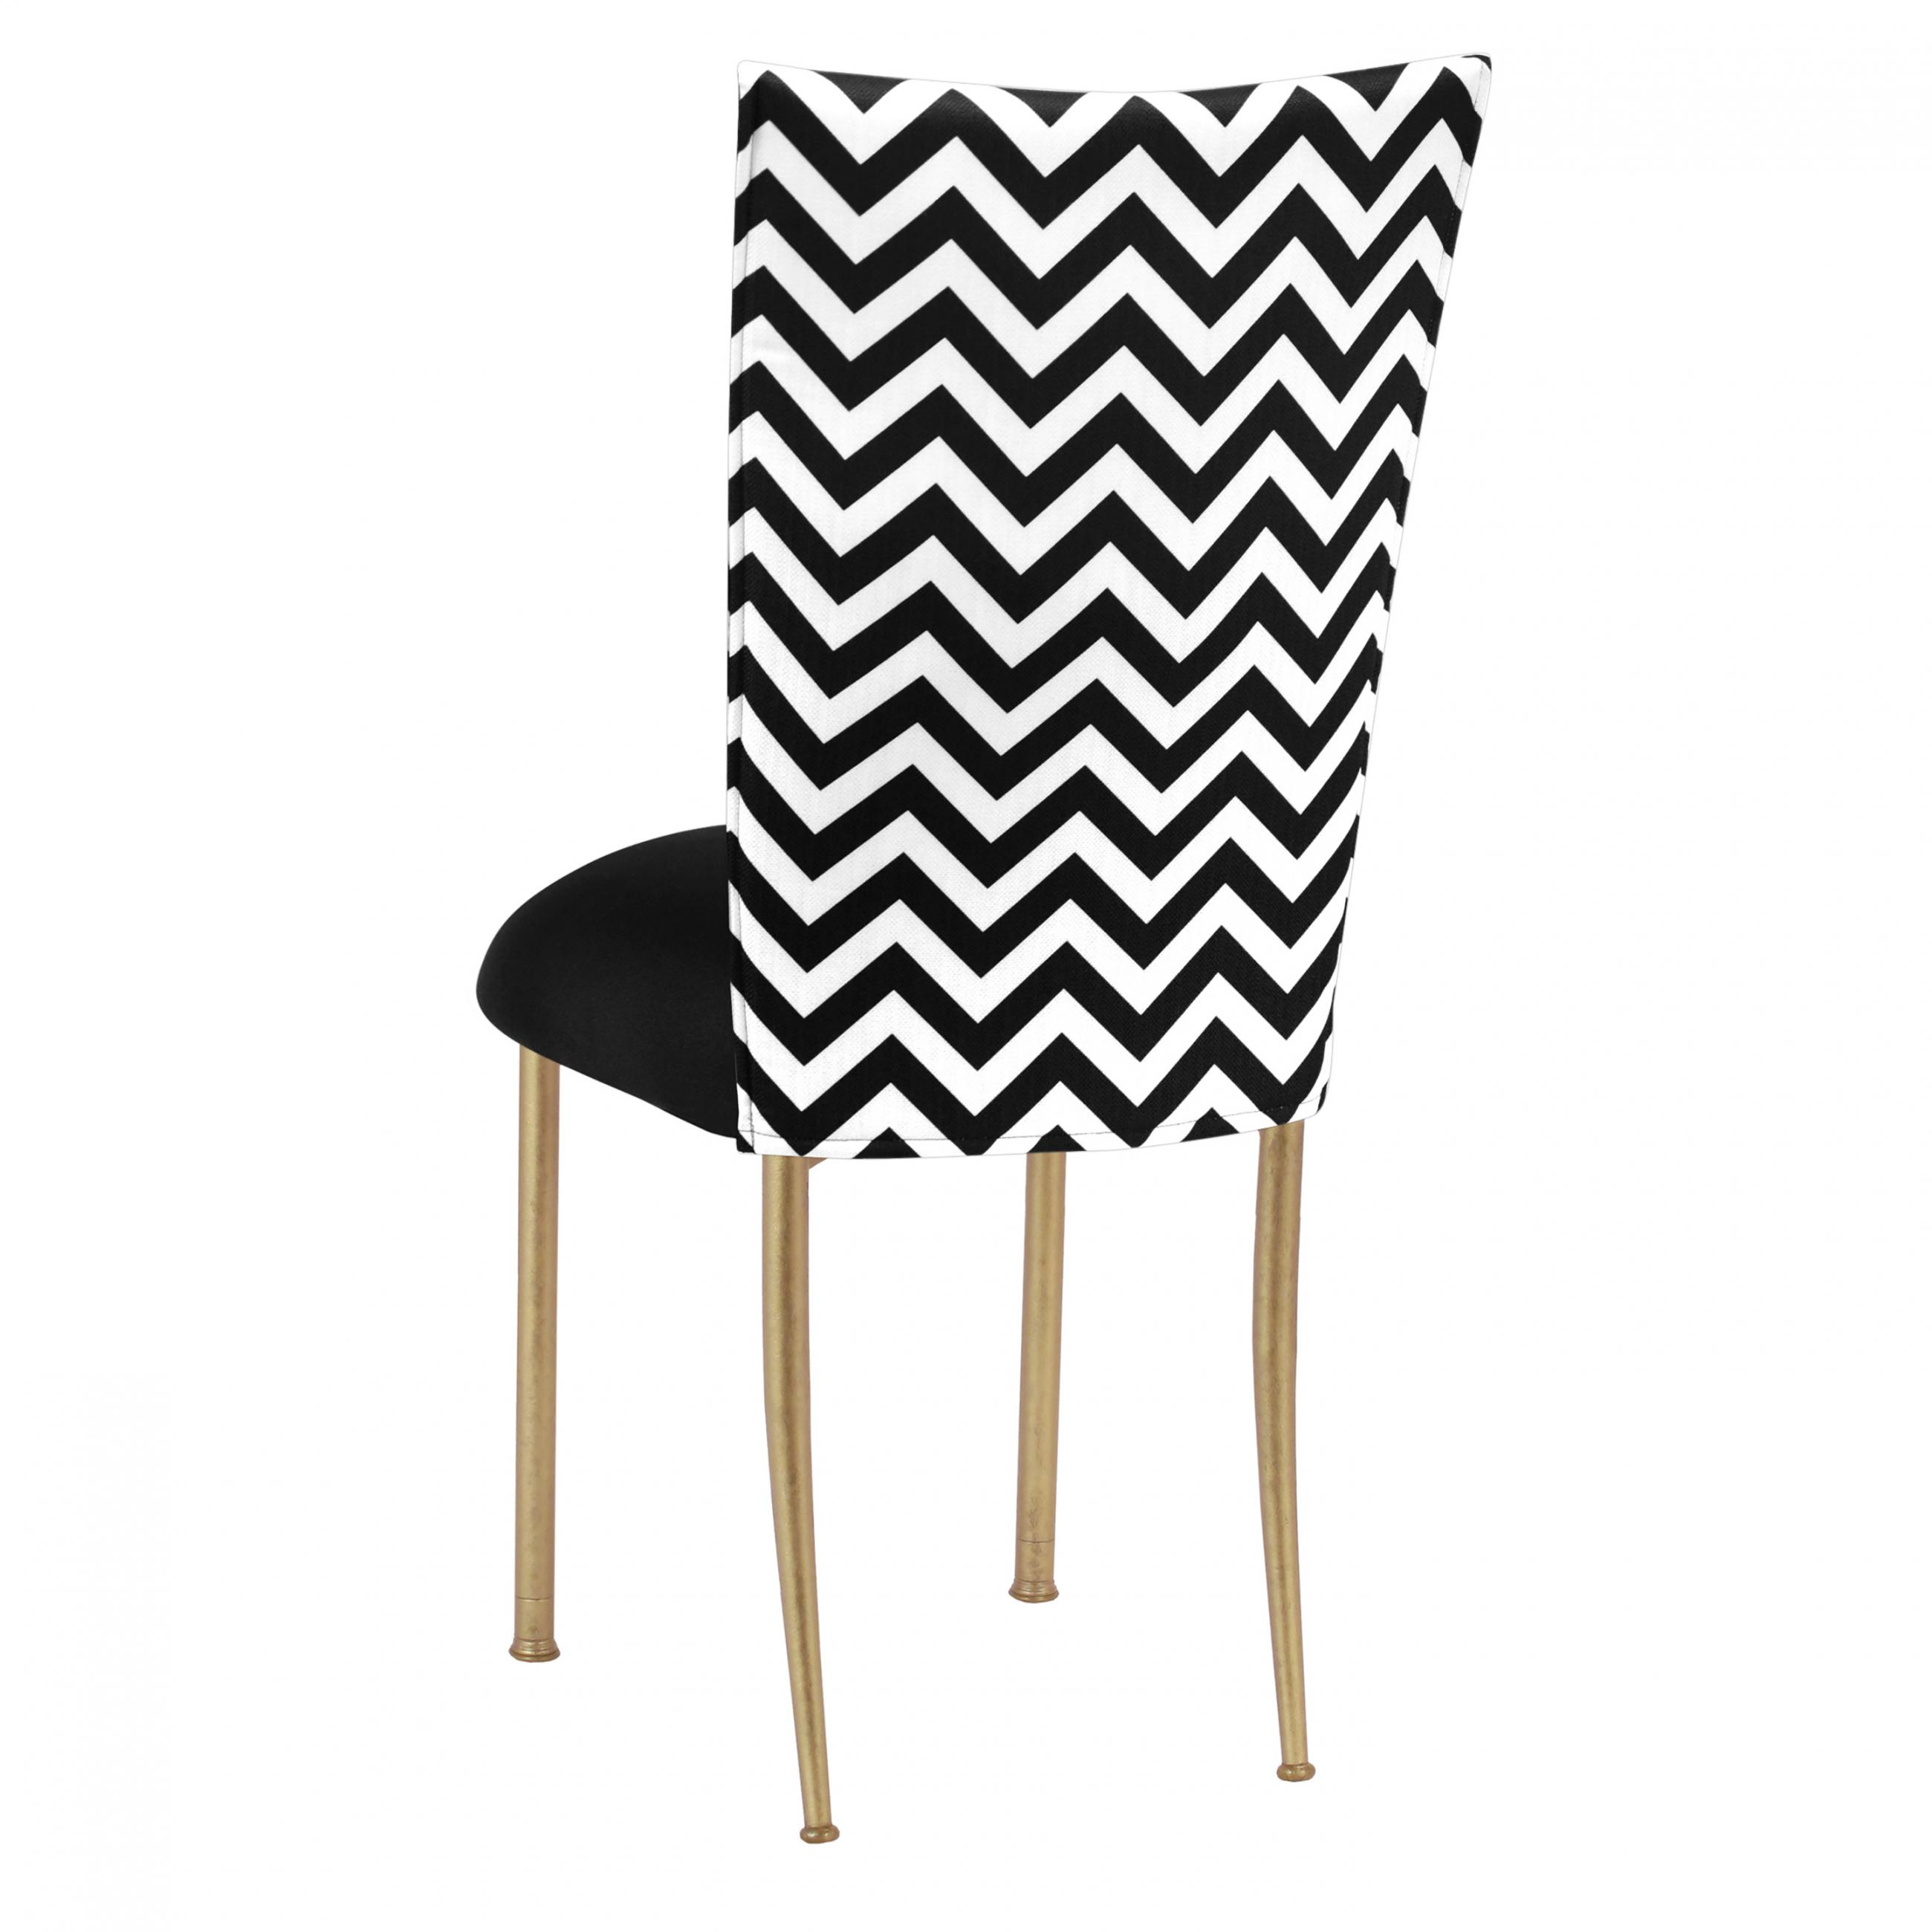 Amazing Chevron Black White Fanfare Chameleon Chair Topper Peak Gmtry Best Dining Table And Chair Ideas Images Gmtryco